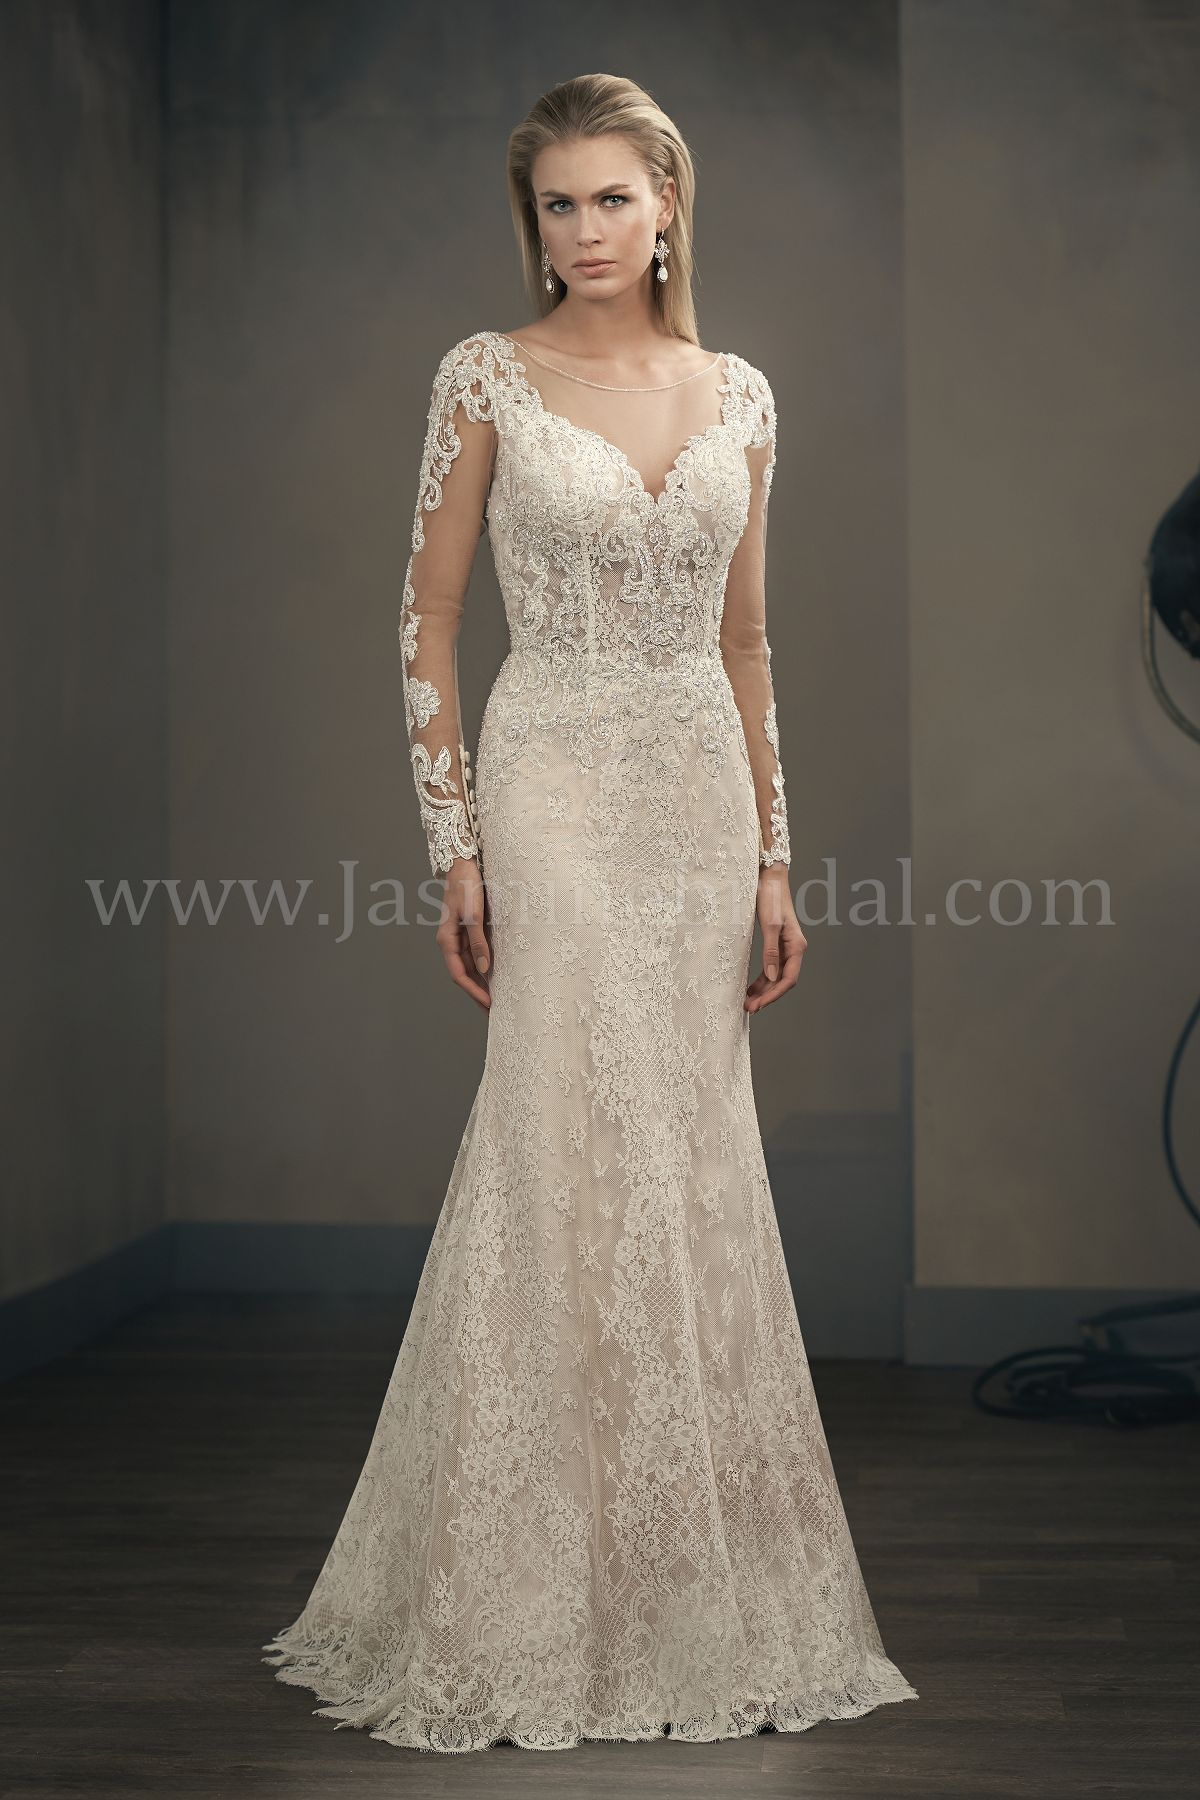 Jasmine Bridal   Couture Style T192052 in Ivory/Morganite ...